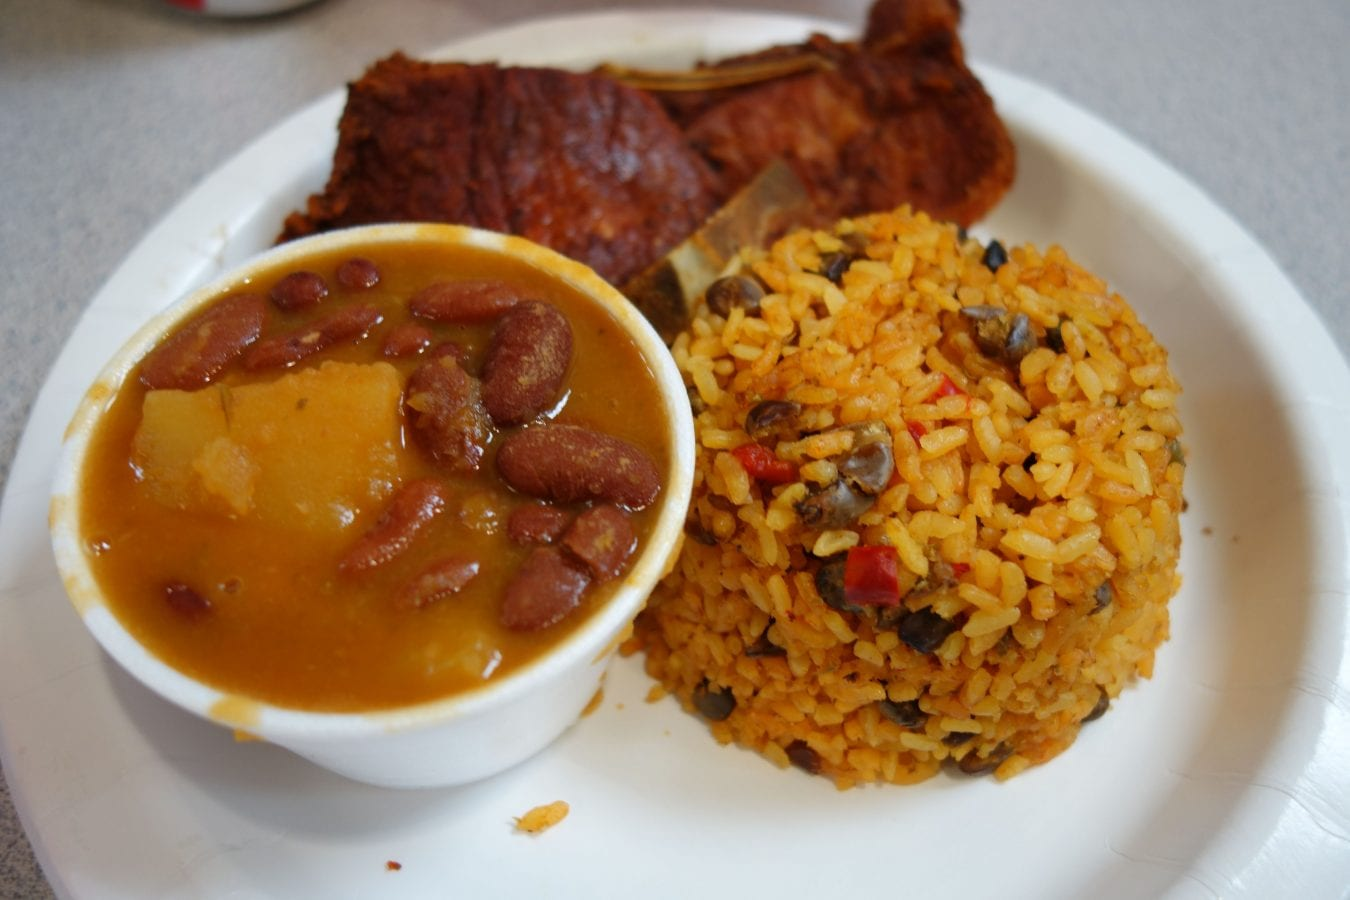 Sofrito rico authentic puerto rican cuisine las vegas nv for Authentic puerto rican cuisine